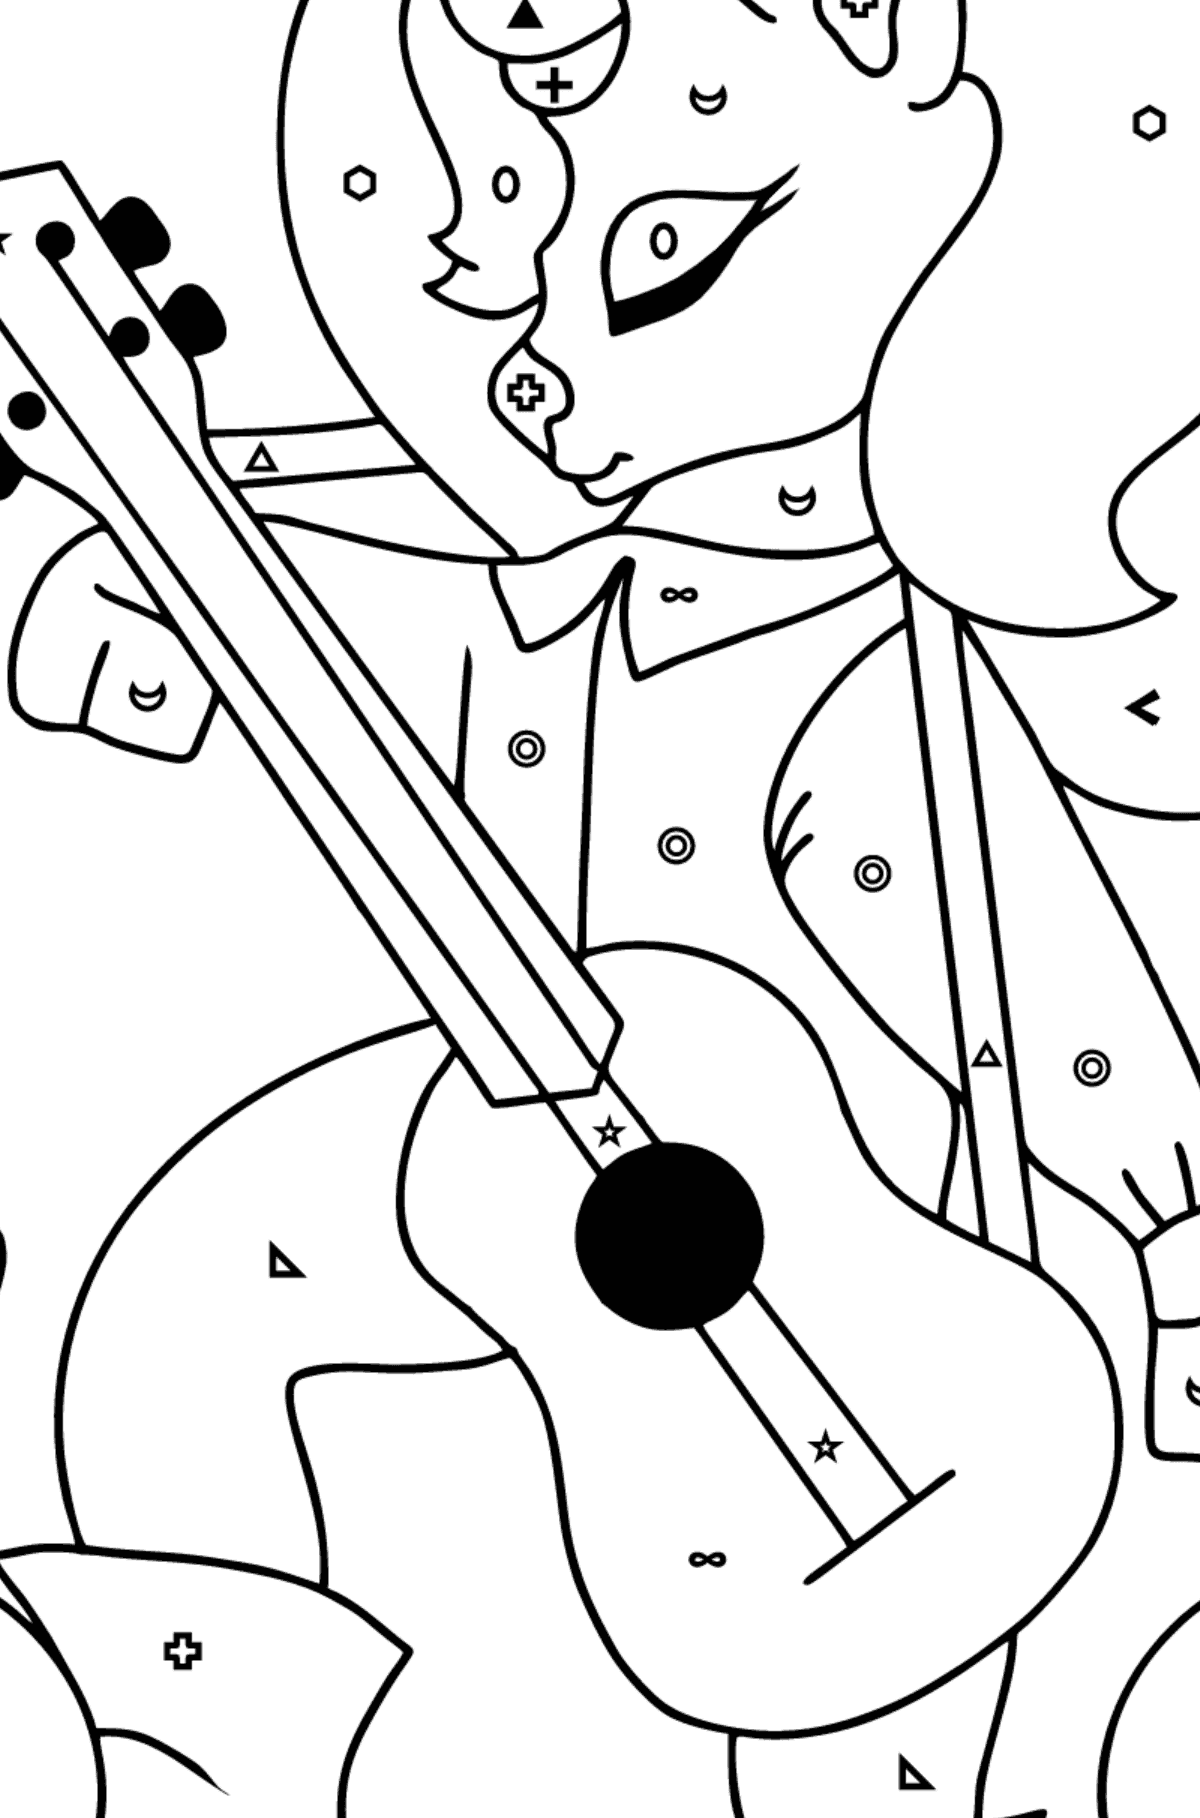 Complex Coloring Page - A Unicorn with a Guitar for Children  - Color by Symbols and Geometric Shapes